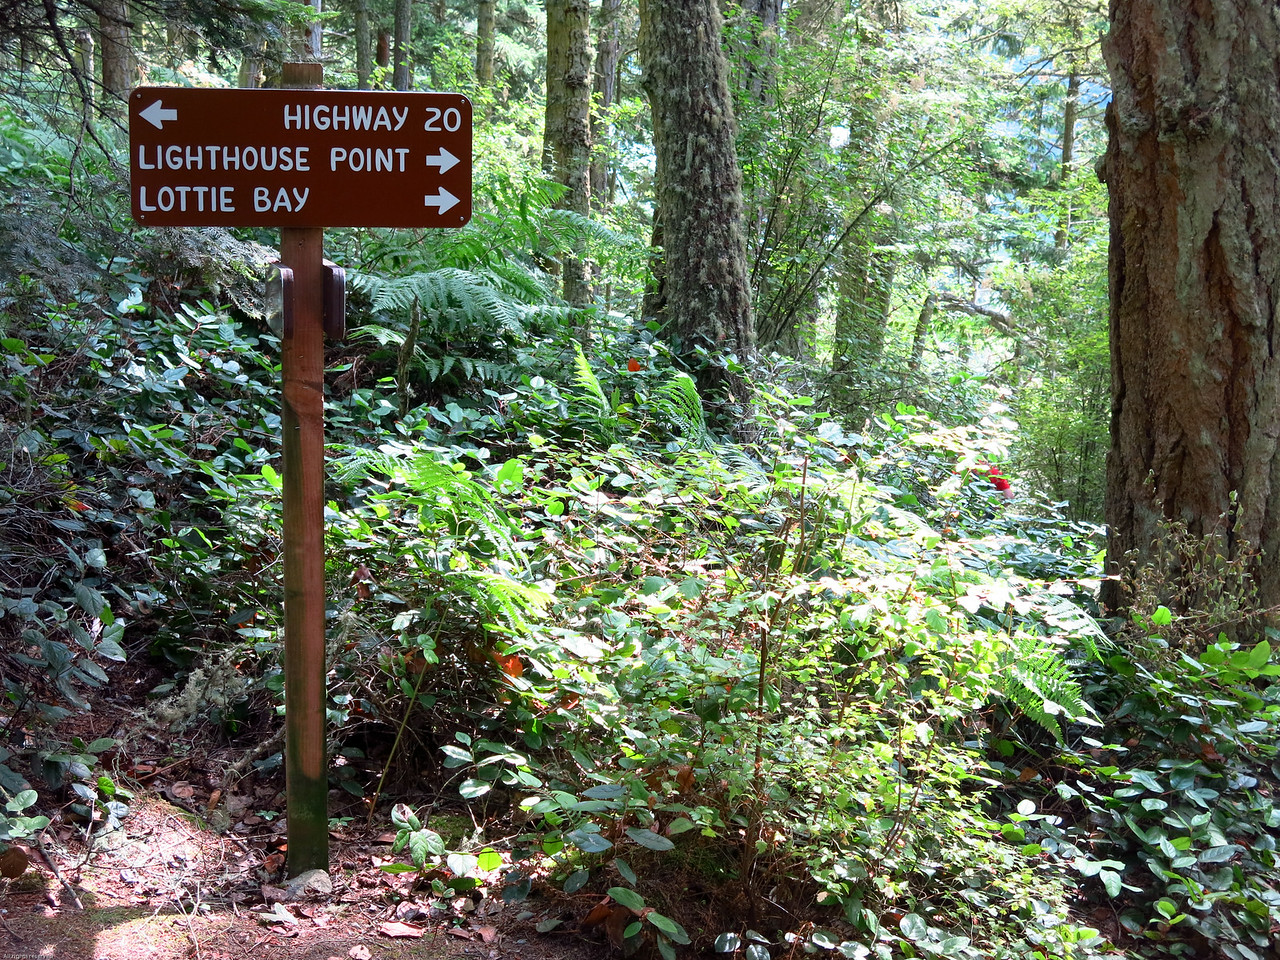 Trail intersection with the path to Highway 20 and the entrance to the park.